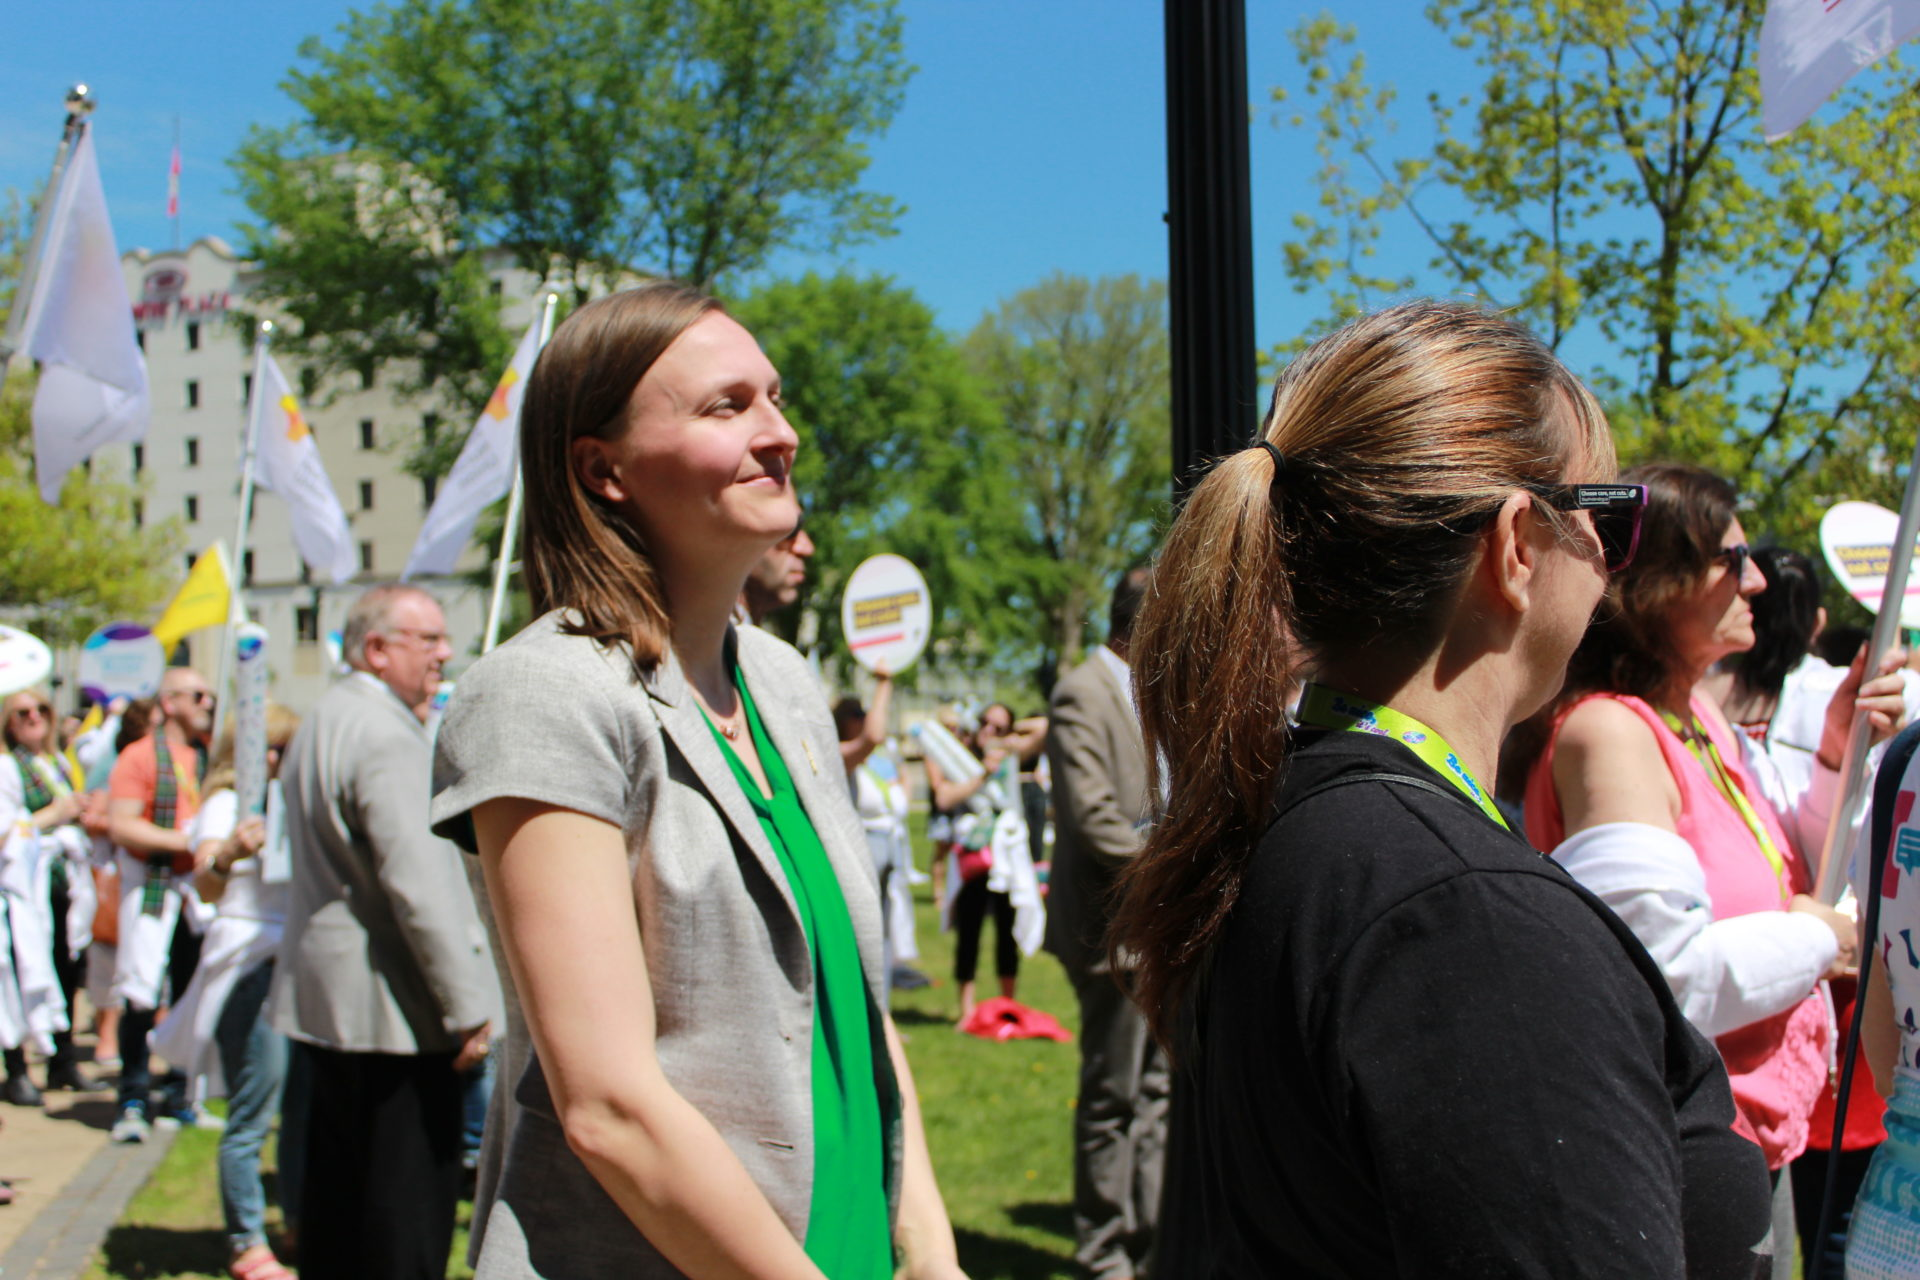 Biography: Megan Mitton